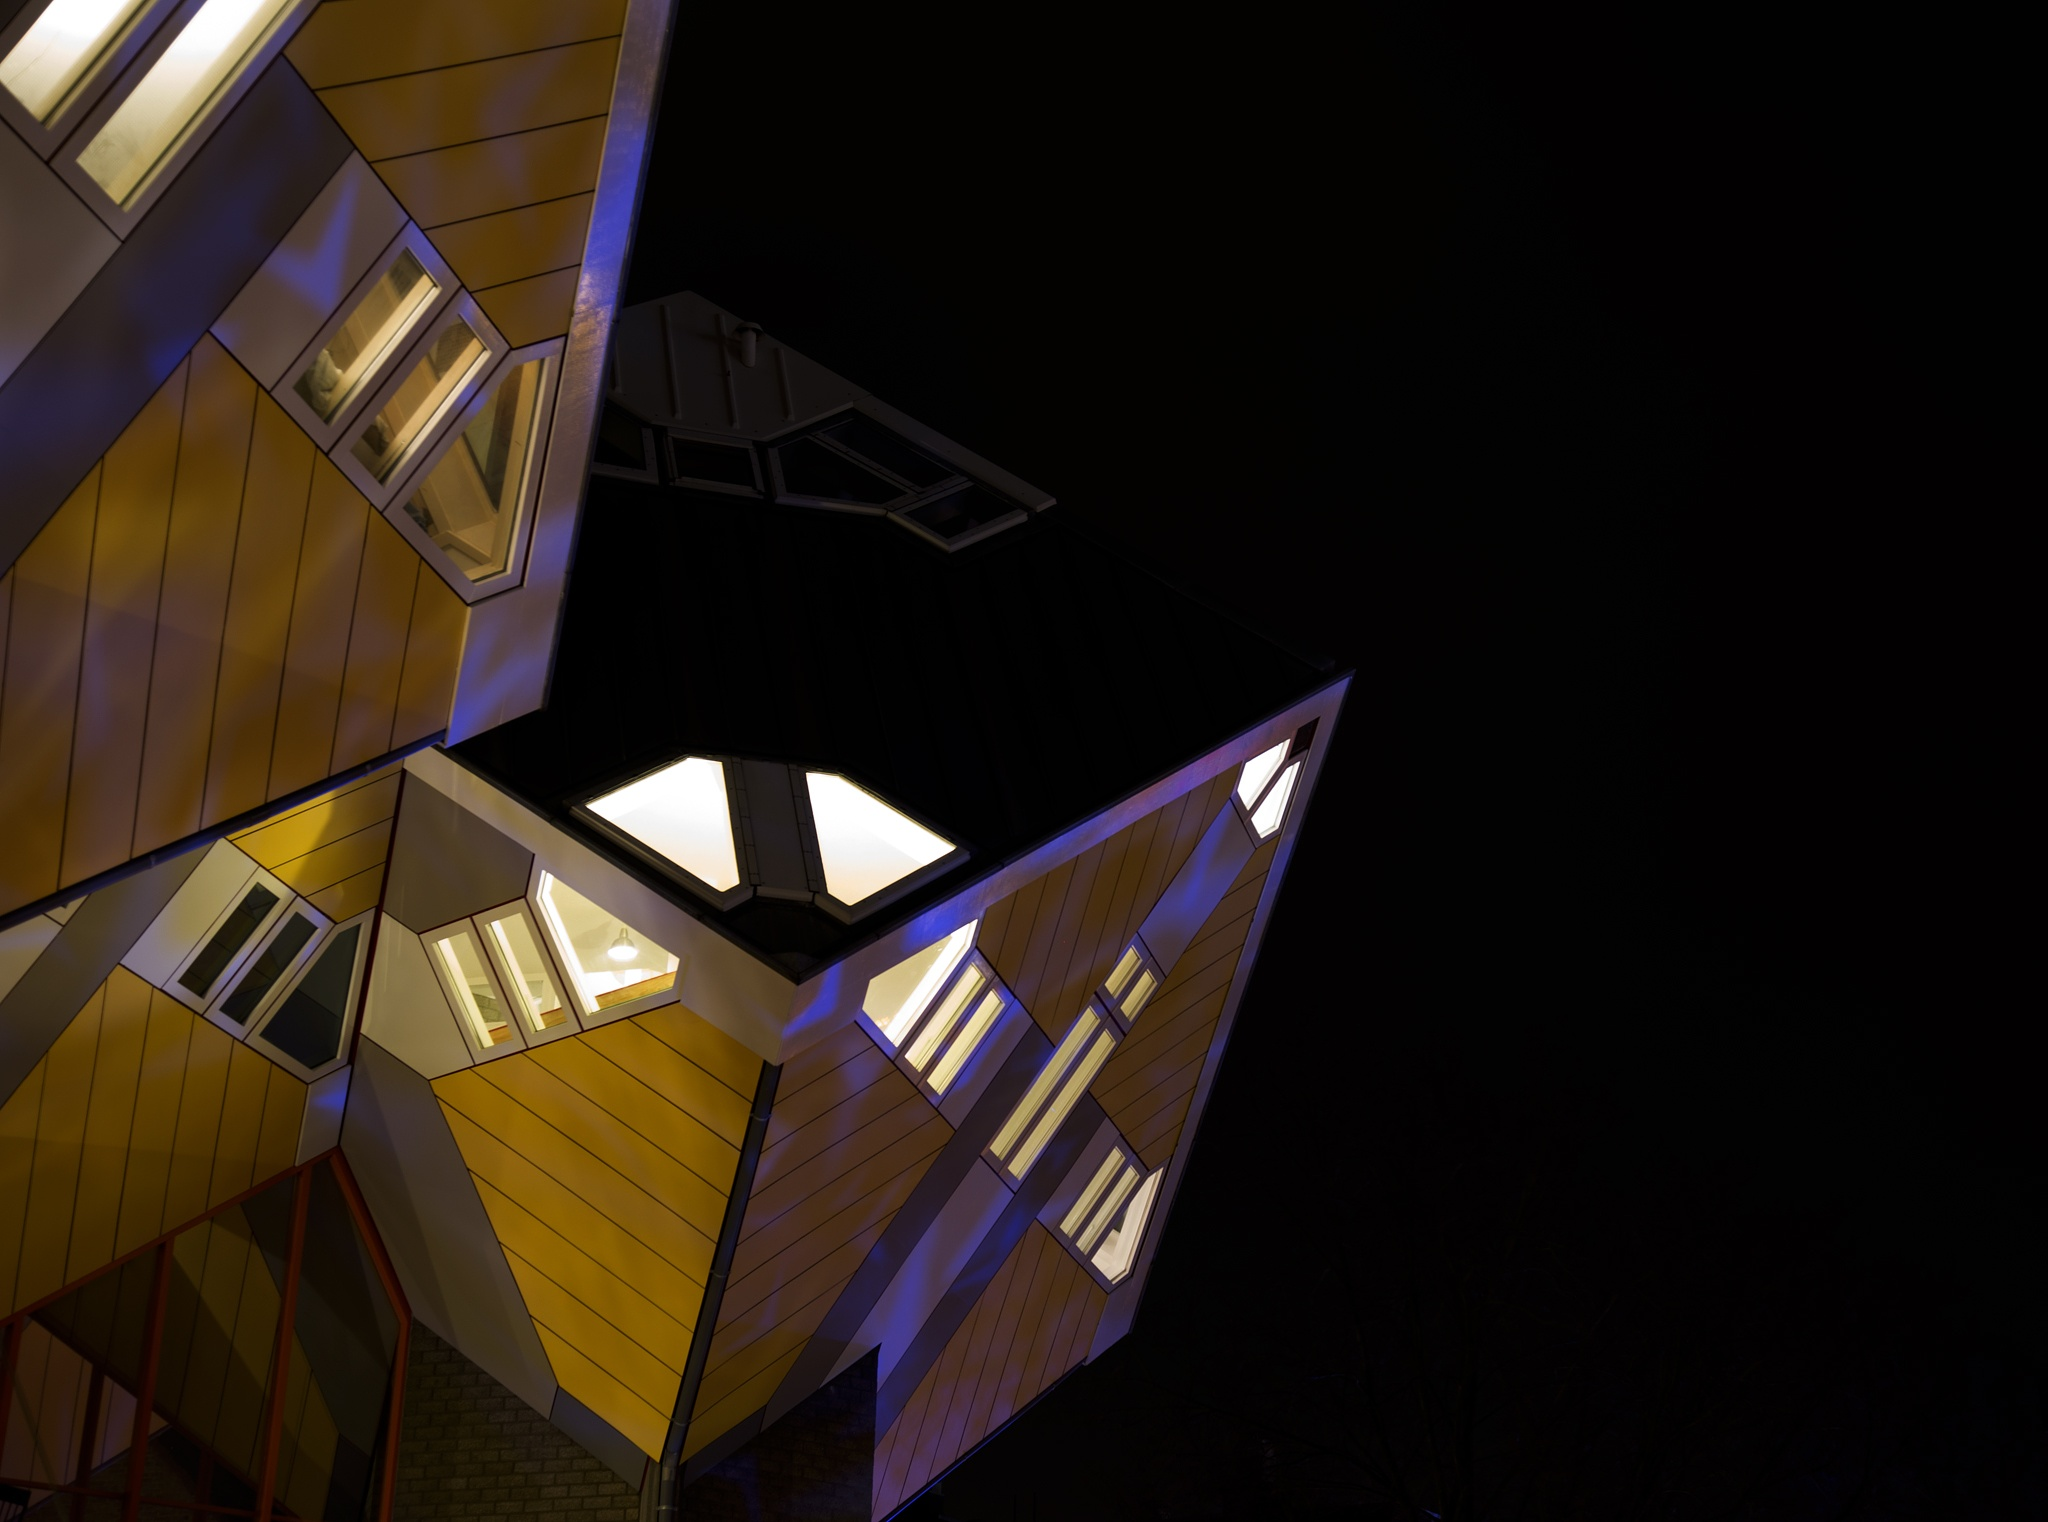 Cube-houses Rotterdam by Yvonne Smits